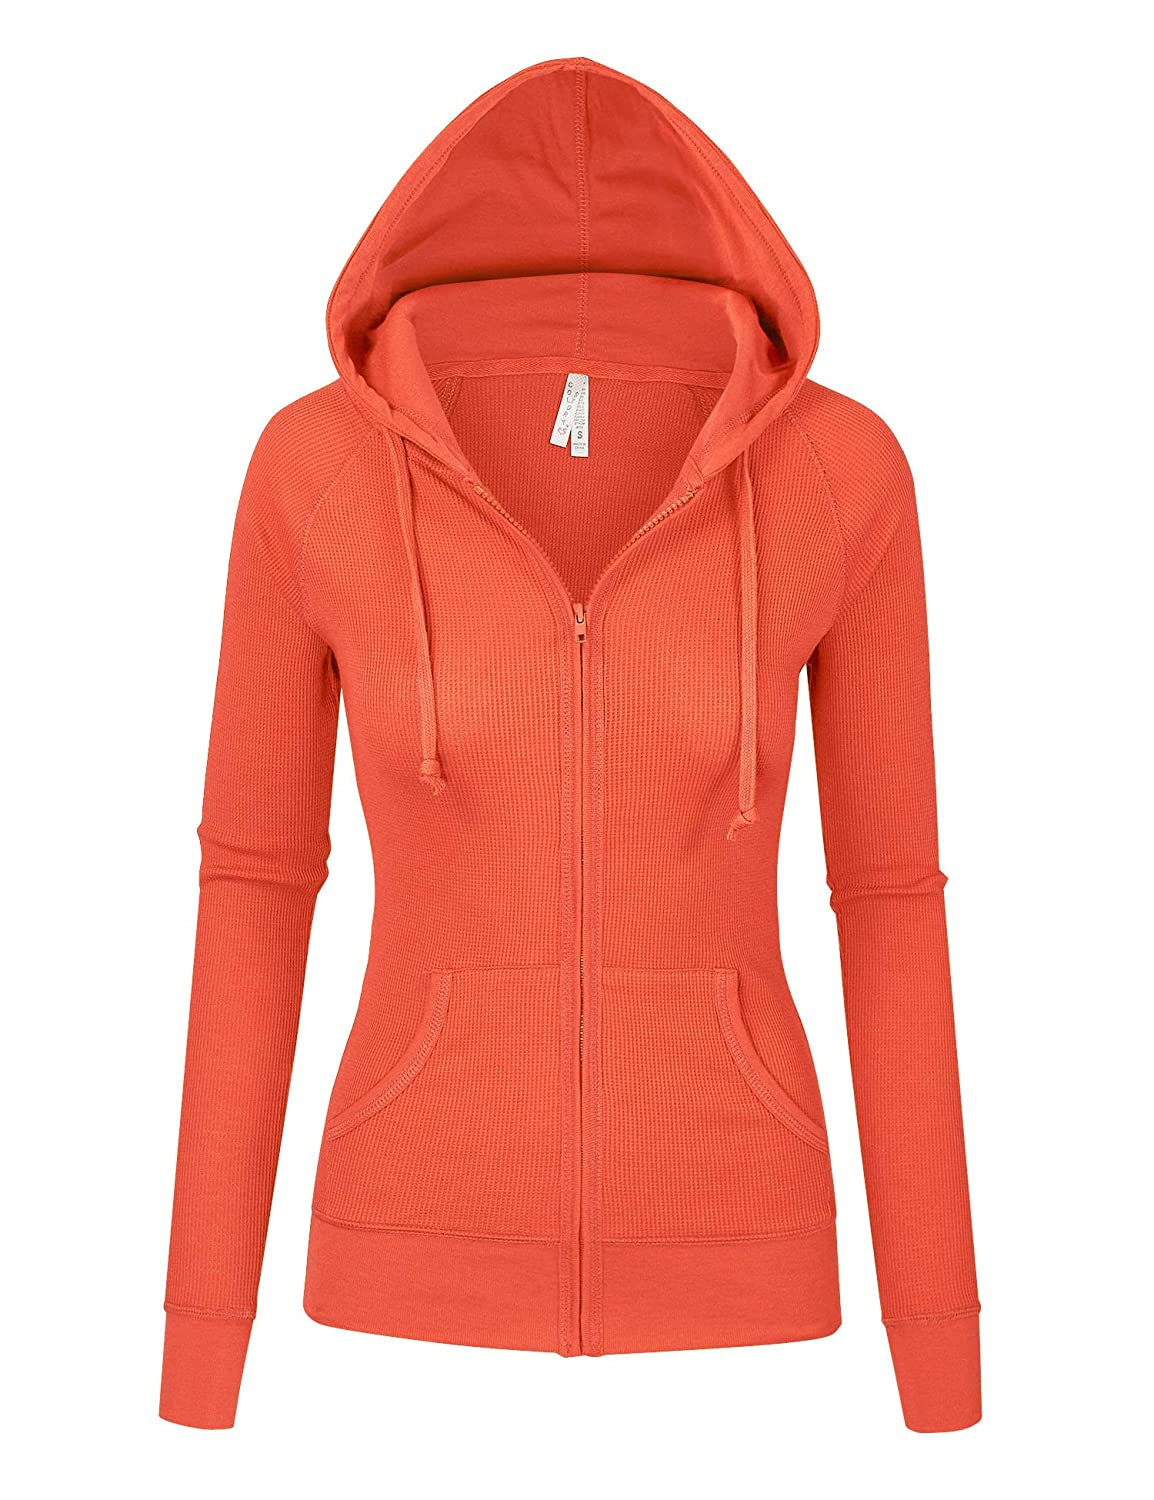 orange Womens Multi colors Thermal Zip Up Casual Hoodie Jacket S3X